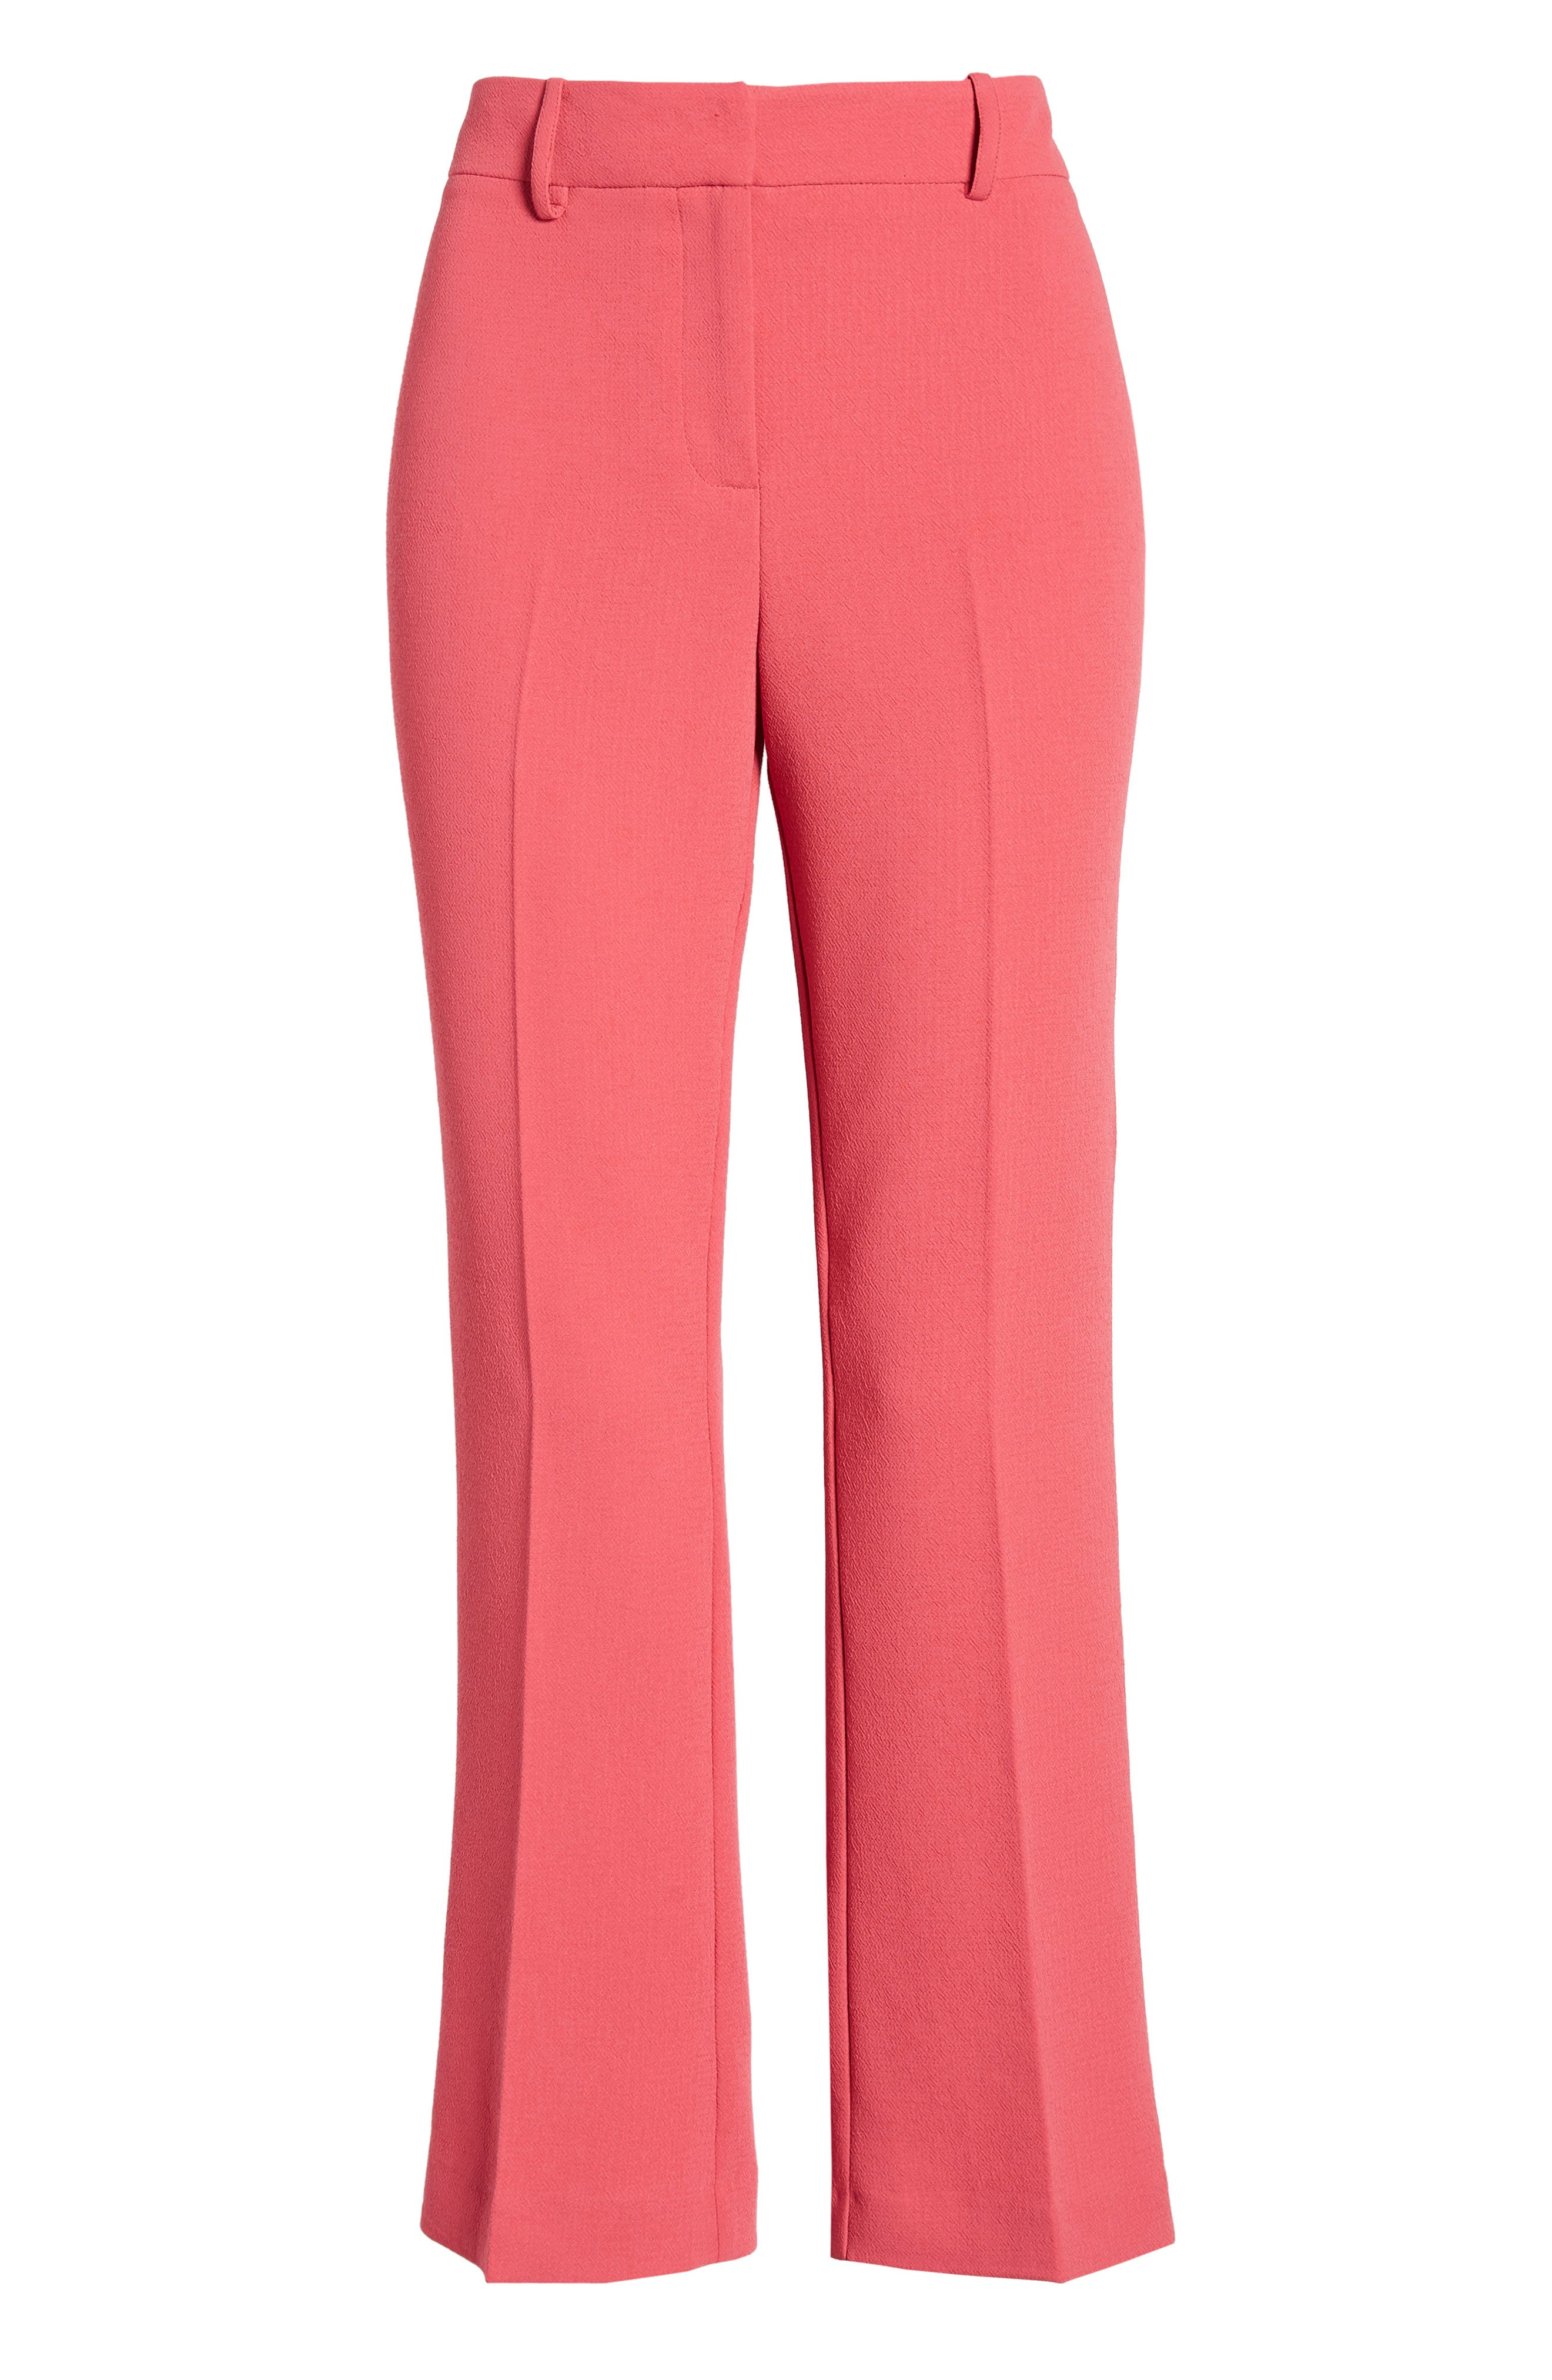 1.STATE, Crepe Kick Flare Ankle Pants, Alternate thumbnail 7, color, CORAL POPPY